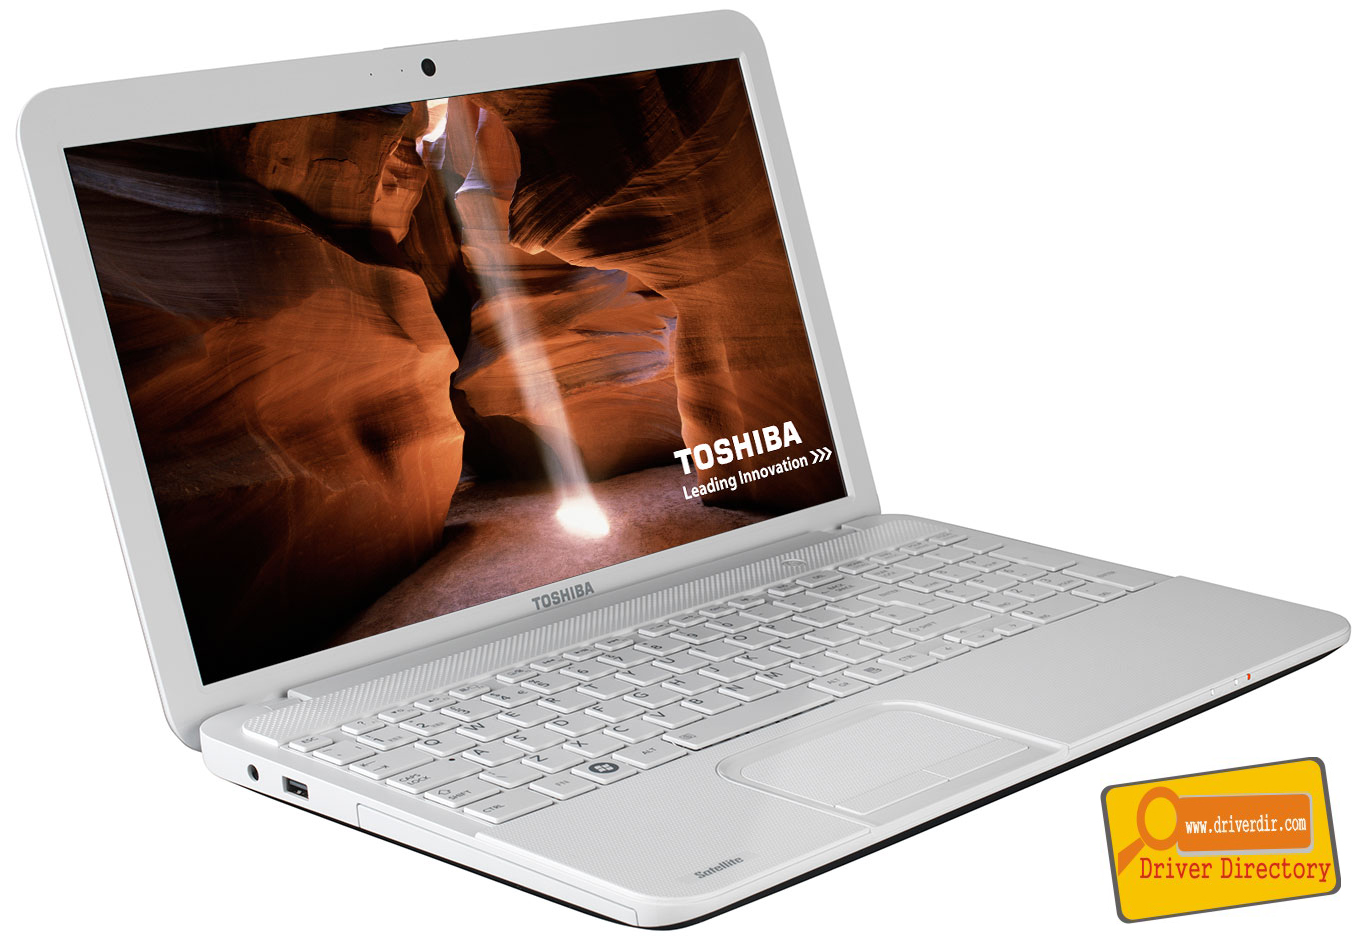 Download Toshiba Satellite Driver C855 for Windows 7 32bit & 64bit